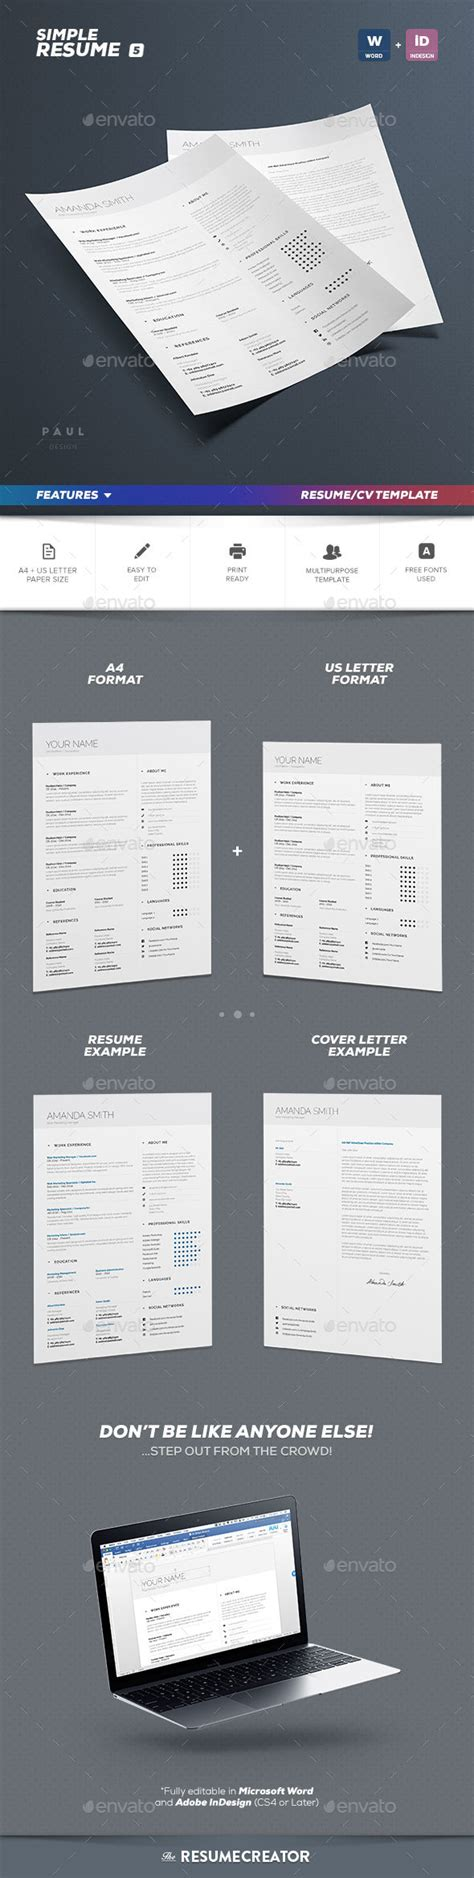 simple resume template vol 3 simple resume cv volume 5 by paolo6180 graphicriver